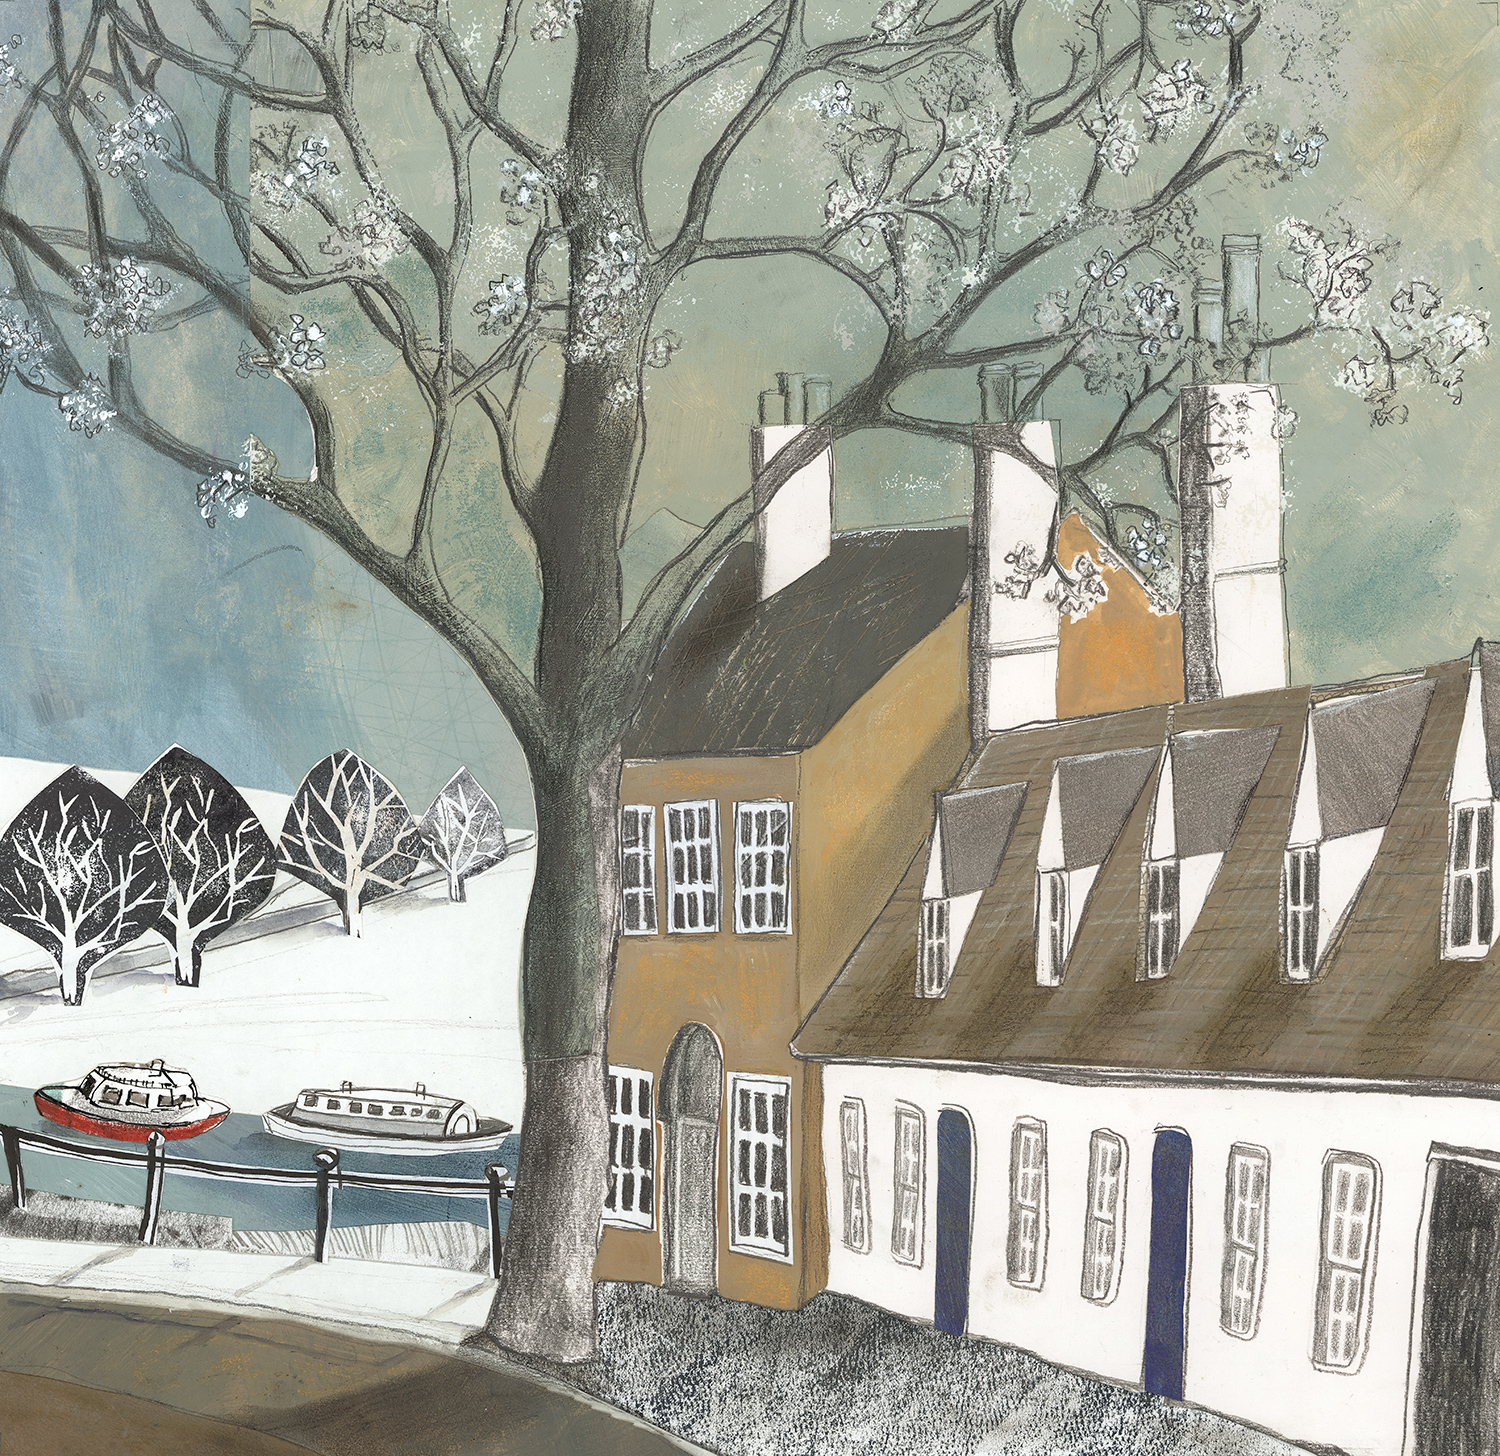 Chesterton Lane with Houseboats  62 x 63cm  mixed media  sold